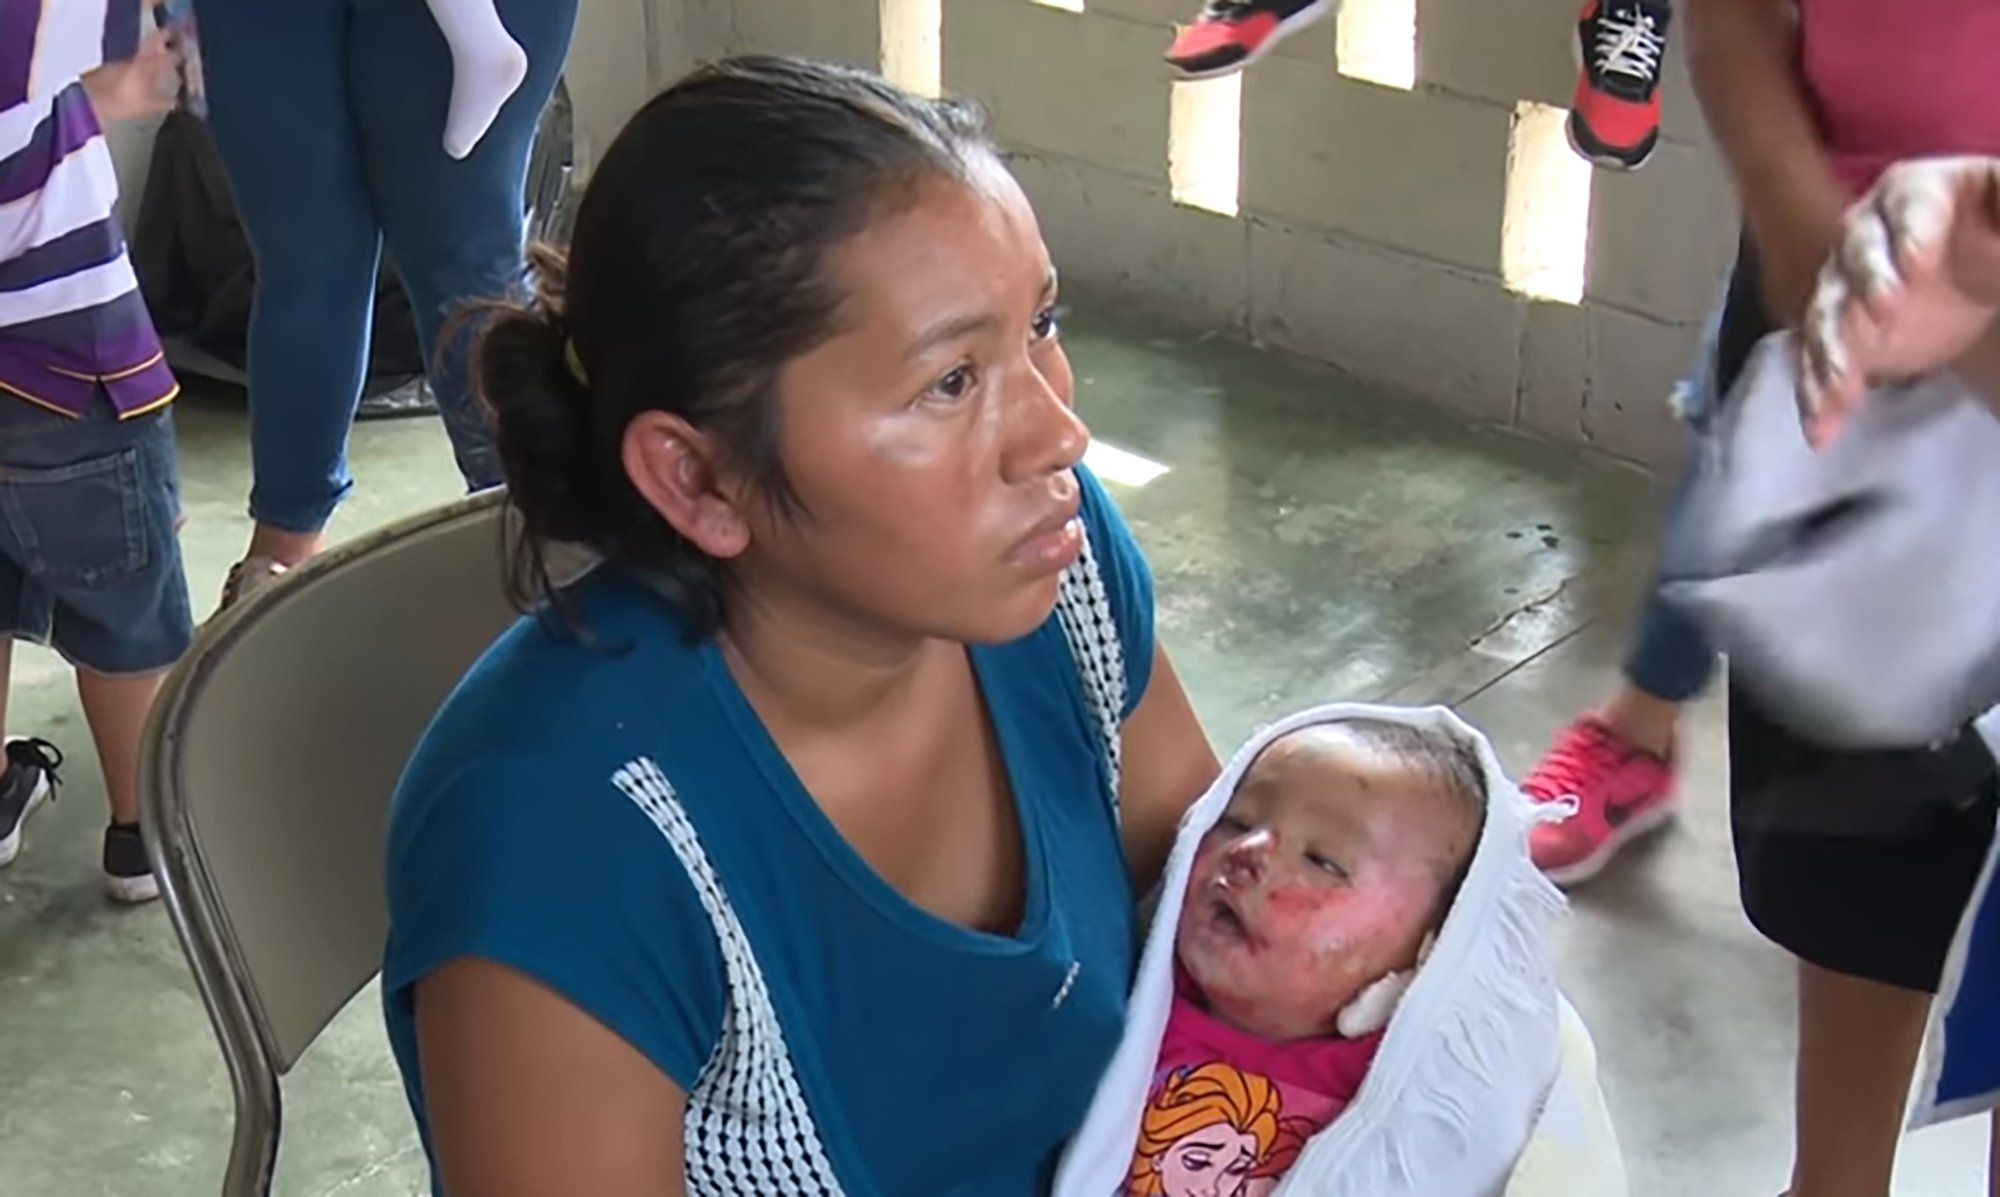 "Pic shows: Ivis Montoya with her baby. The mother of a seven-month-old baby declaed dead at the hospital realised her little girl was still alive during her funeral. The baby was found to be still breathing inside a church in the city of San Pedro Sula, in the northern Hondurean department of Cortes. The baby girl, Keilin Johanna Ortiz Montoya, had been admitted to the Rivas hospital in Villanueva with convulsions, diarrhoea, severe hydration and blistered skin caused by a bacterial infection on August 3rd. Despite intensive treatment at the hospital???s paediatric unit, the baby was pronounced dead three days later on Monday morning at 09.00am, and the corresponding death certificate was reportedly issued. The mother, Ivis Montoya, left the hospital with her supposedly dead baby in her arms and went to a cousin???s house. She said: ""I had no money to get home."" After a candle lit vigil during the night the baby was then taken to the church in nearby Dos Caminos for the funeral. Ivis said that they placed her daughter???s body on a chair in the church as: ""We had no money for a coffin."" It was at this point that the mother noticed the little Keilin was still breathing. Reluctant to return to the hospital that had declared her baby dead, she rushed to a local clinic. Here medical staff administered the baby some medicine, a woman???s support group persuaded her to take the baby back to the paediatric unit report local media. The baby girl was immediately taken to the intensive care unit of A and E. The head of the hospital???s Paediatric Department, Elba Campos, said that the incident was being investigated, but that it was too early to reach any conclusions. Keilin is said to be in a serious condition."